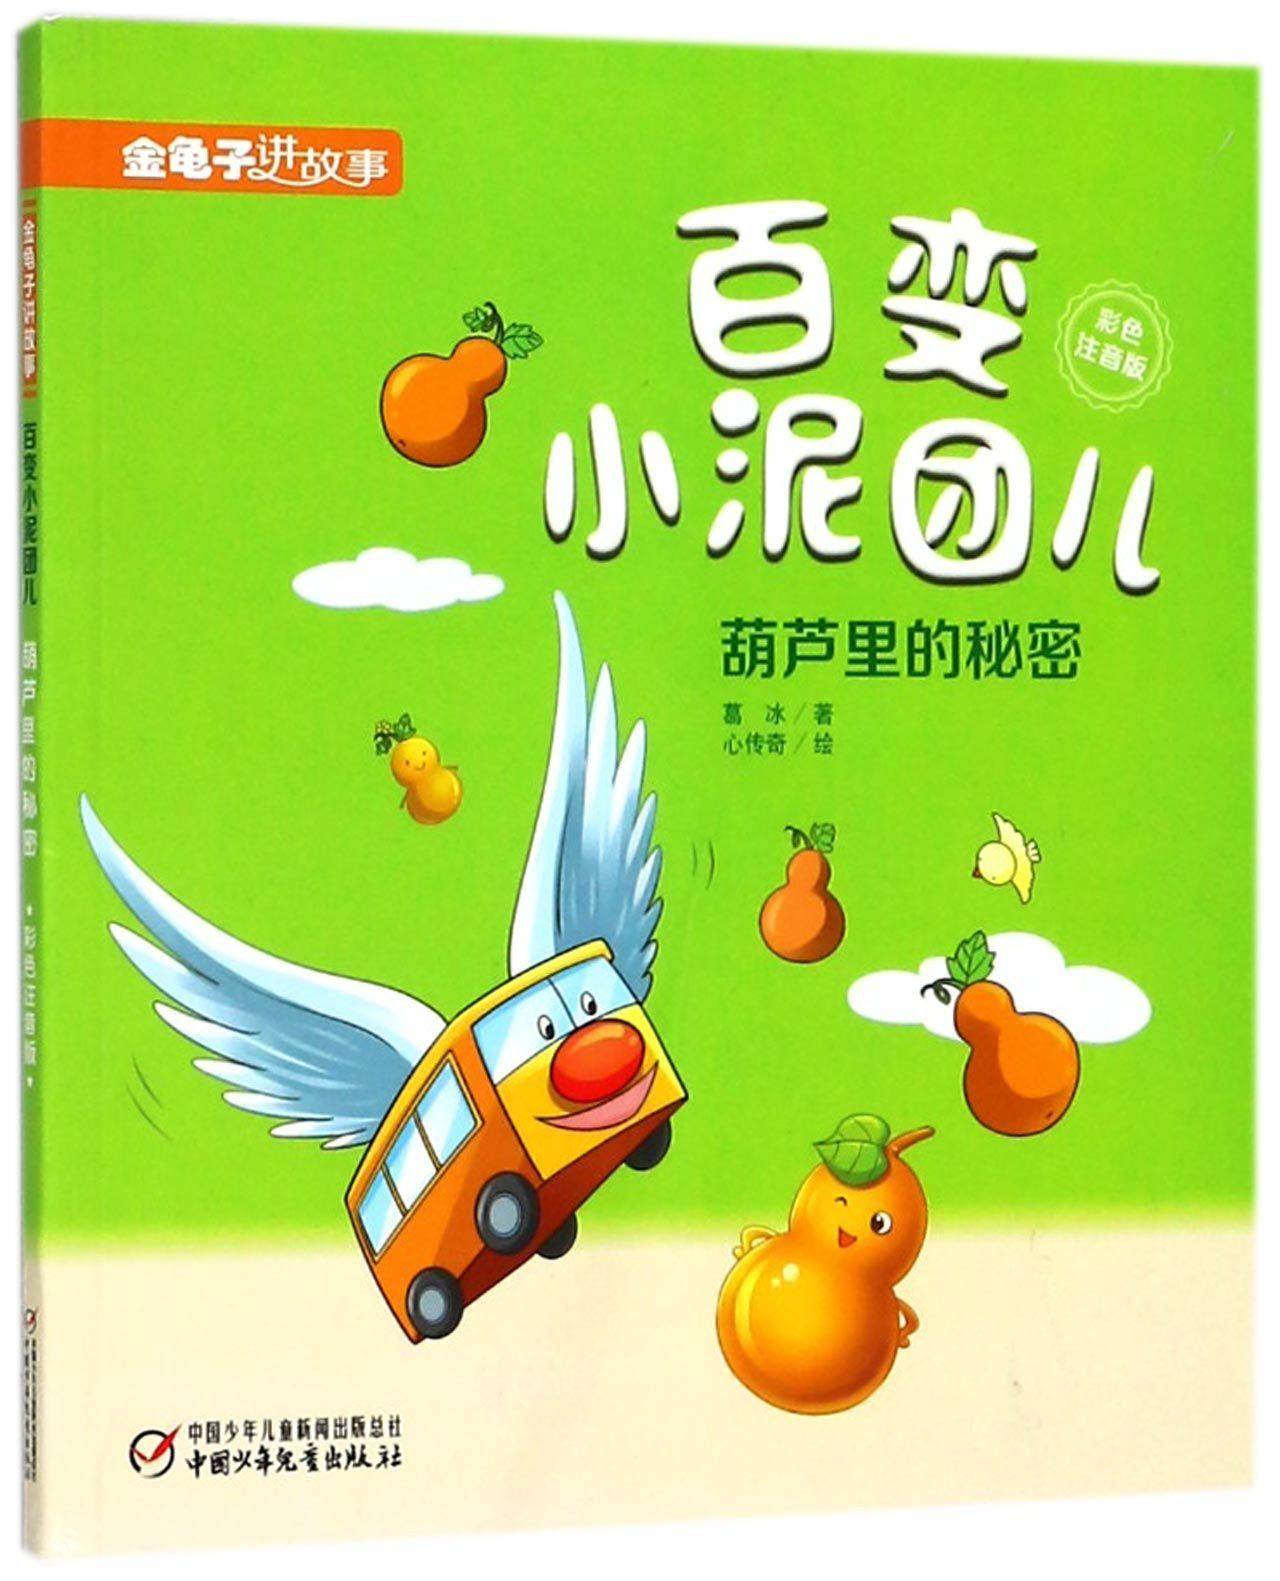 Download Changeable Mud Pie (Secret in Gourd)(with Pinyin and Full Color)/ Cockchafer Tells Stories (Chinese Edition) ebook